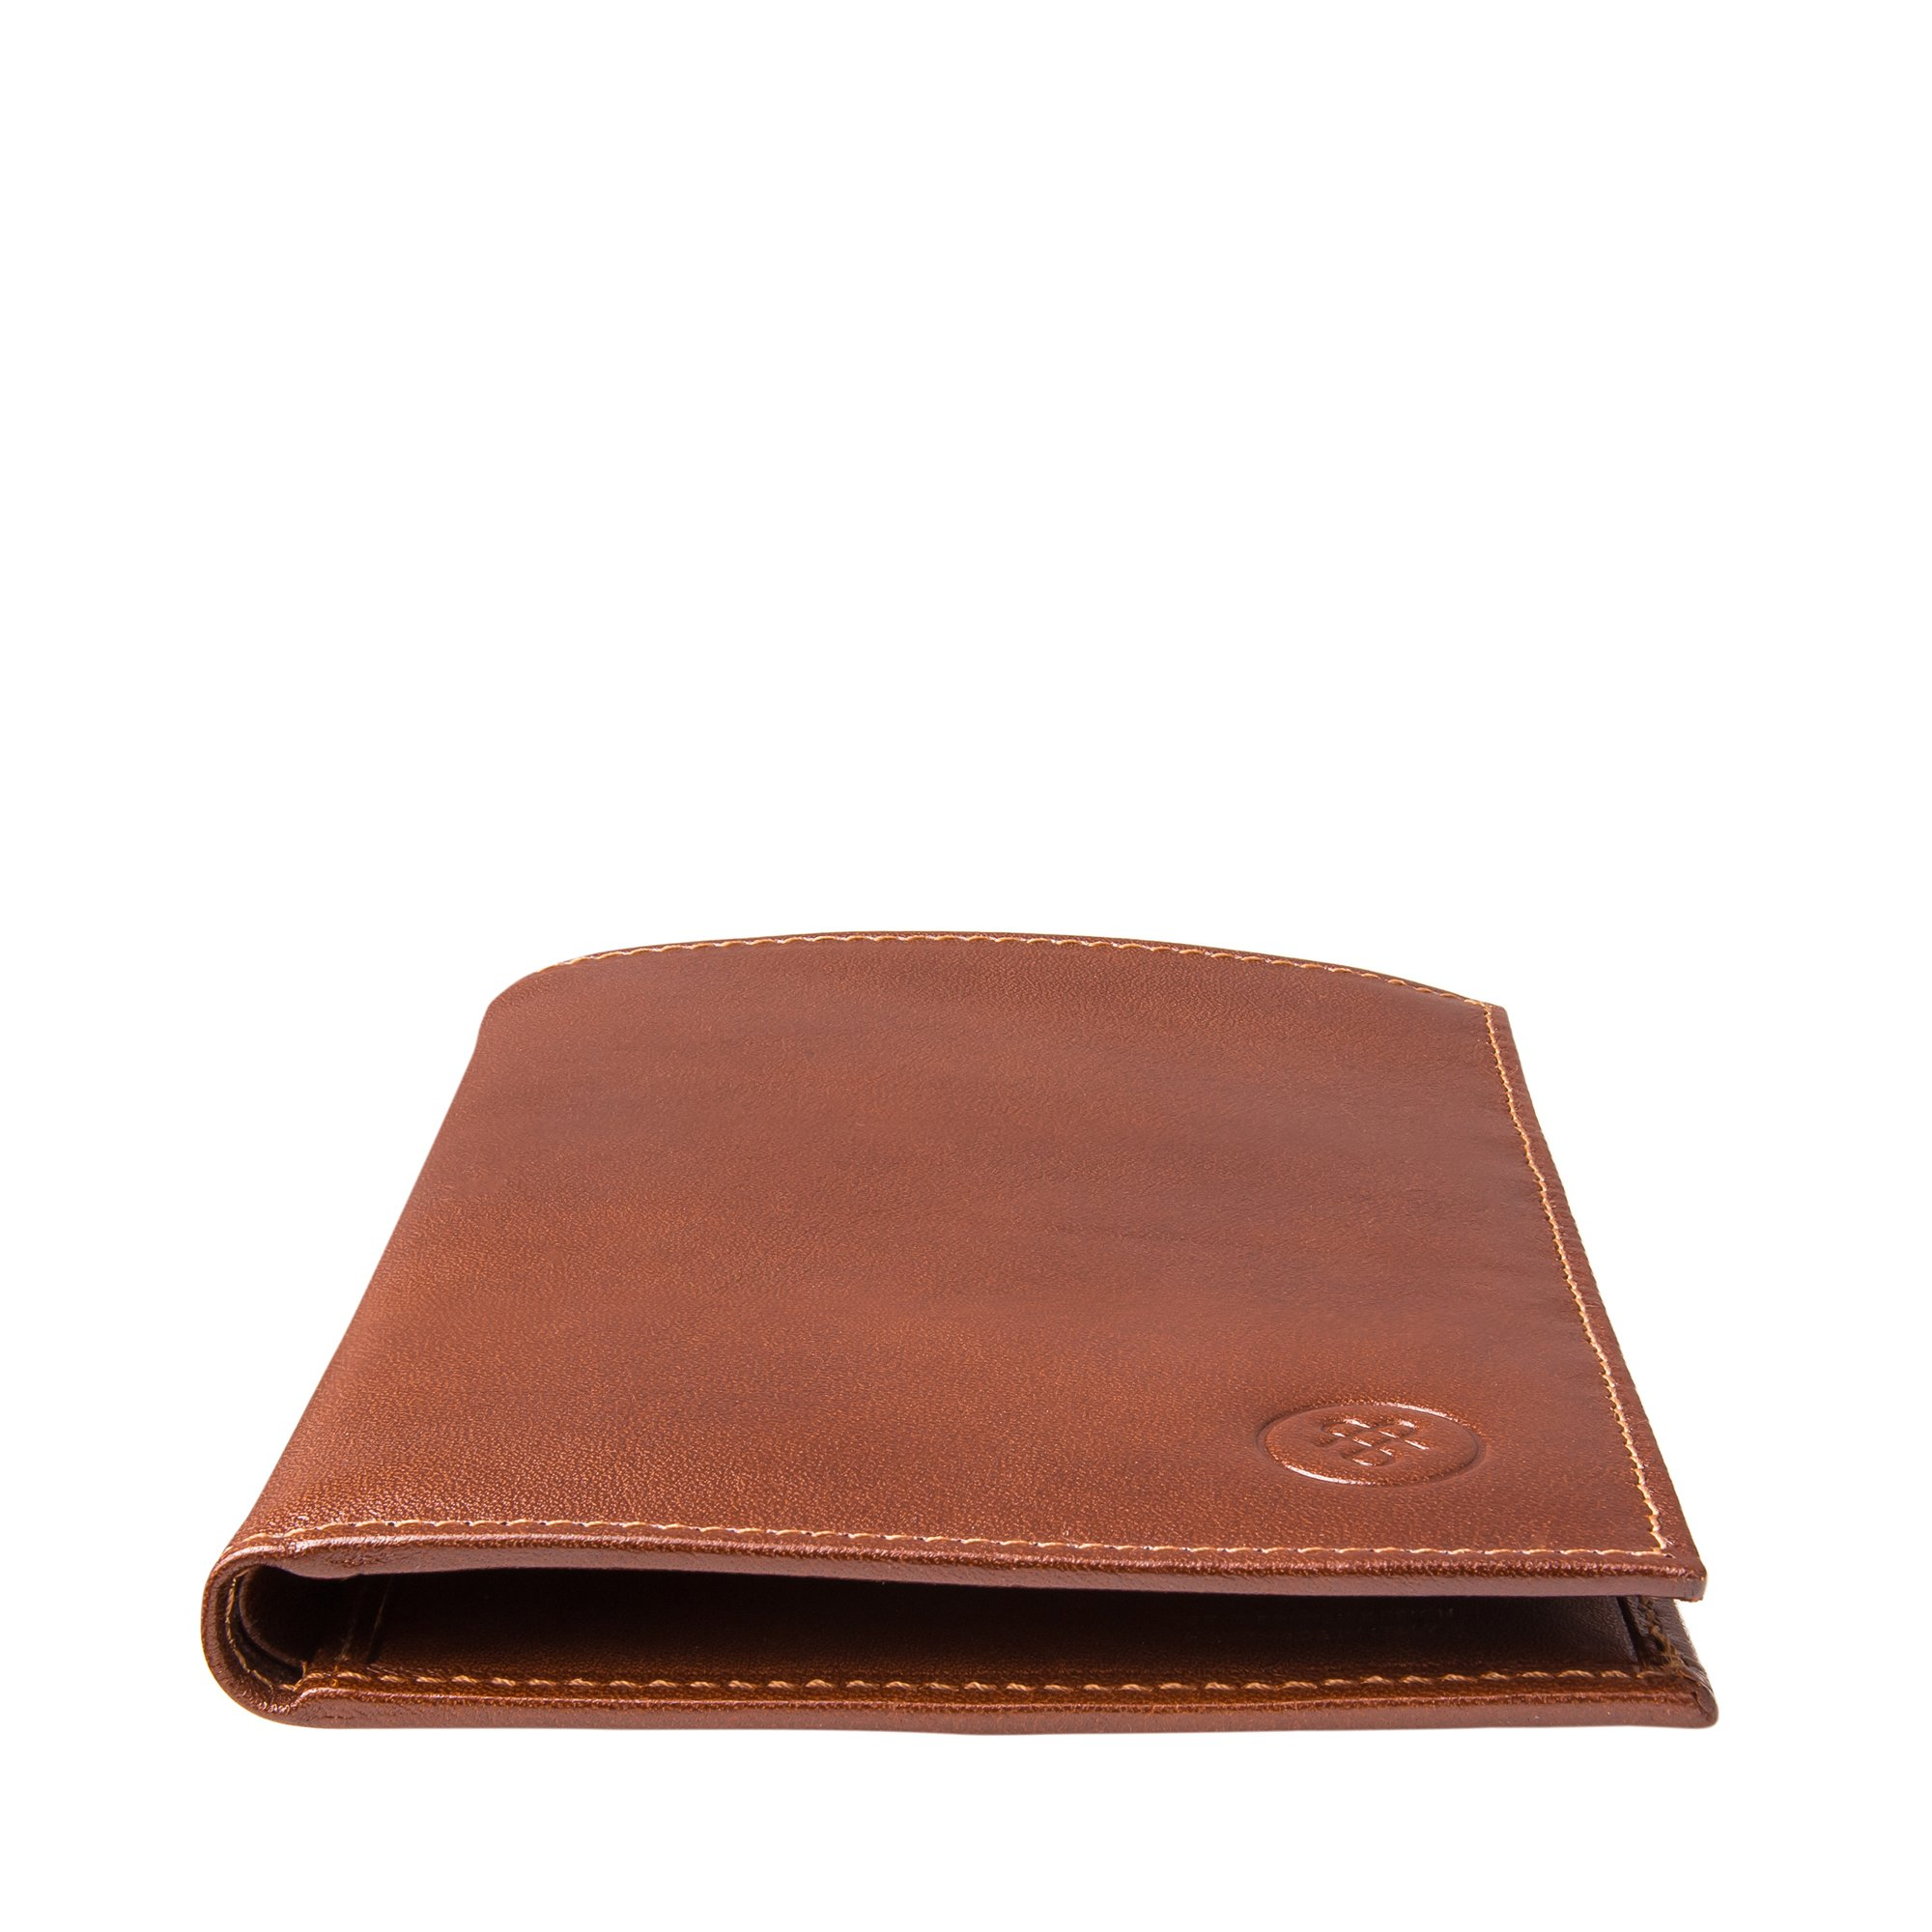 Maxwell Scott Luxury Tan Leather Jacket Wallet - One Size (The Pianillo) by Maxwell Scott Bags (Image #4)